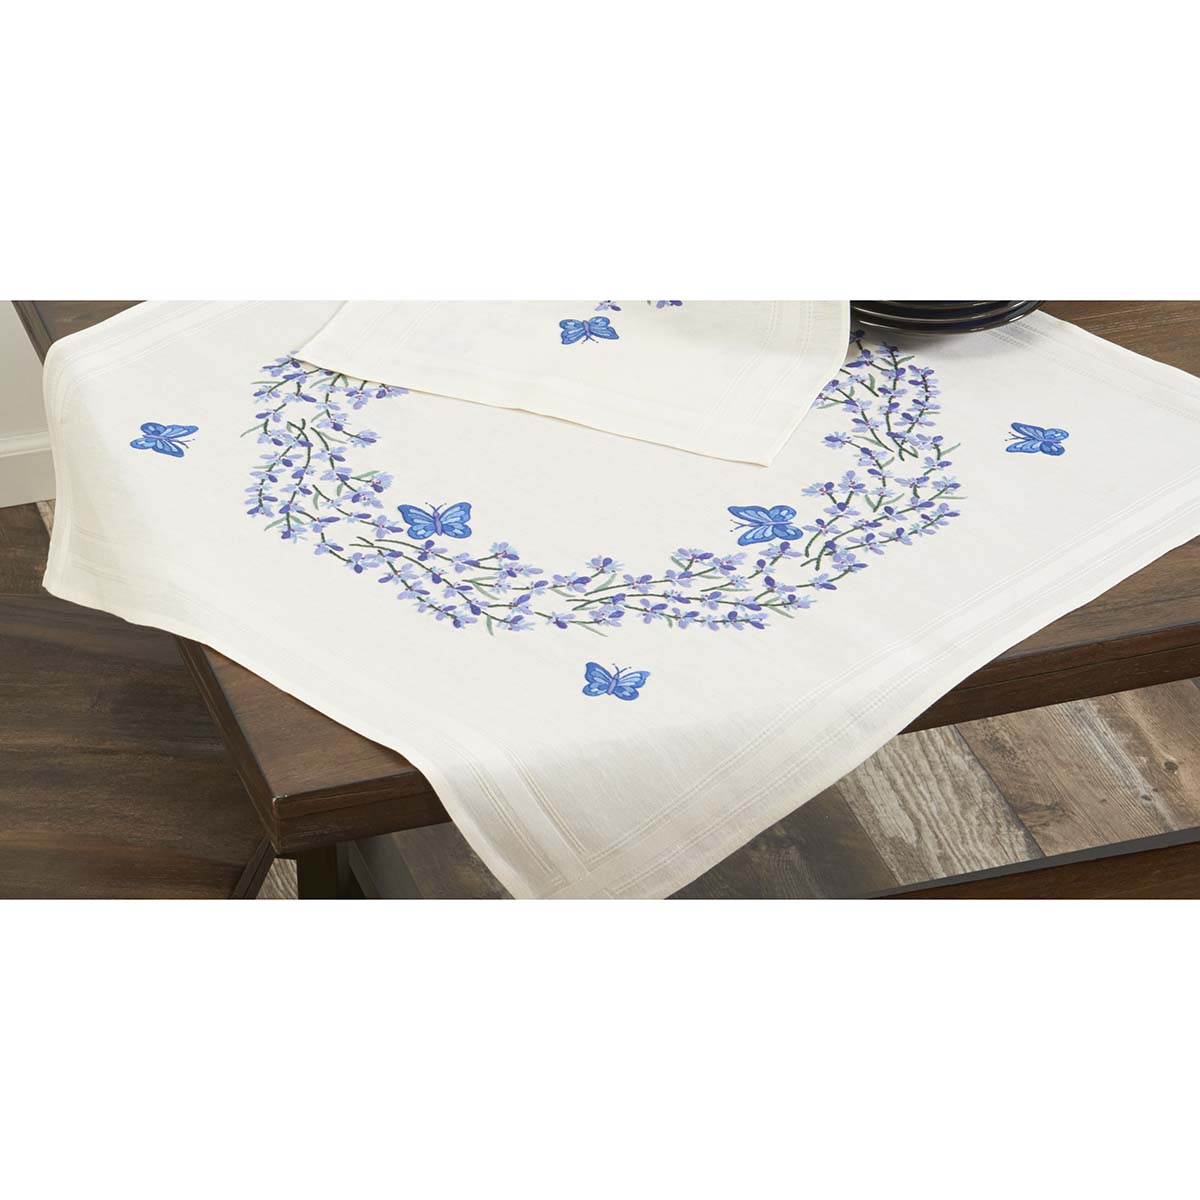 Herrschners® Lavender With Butterflies Table Topper Stamped Embroidery Kit